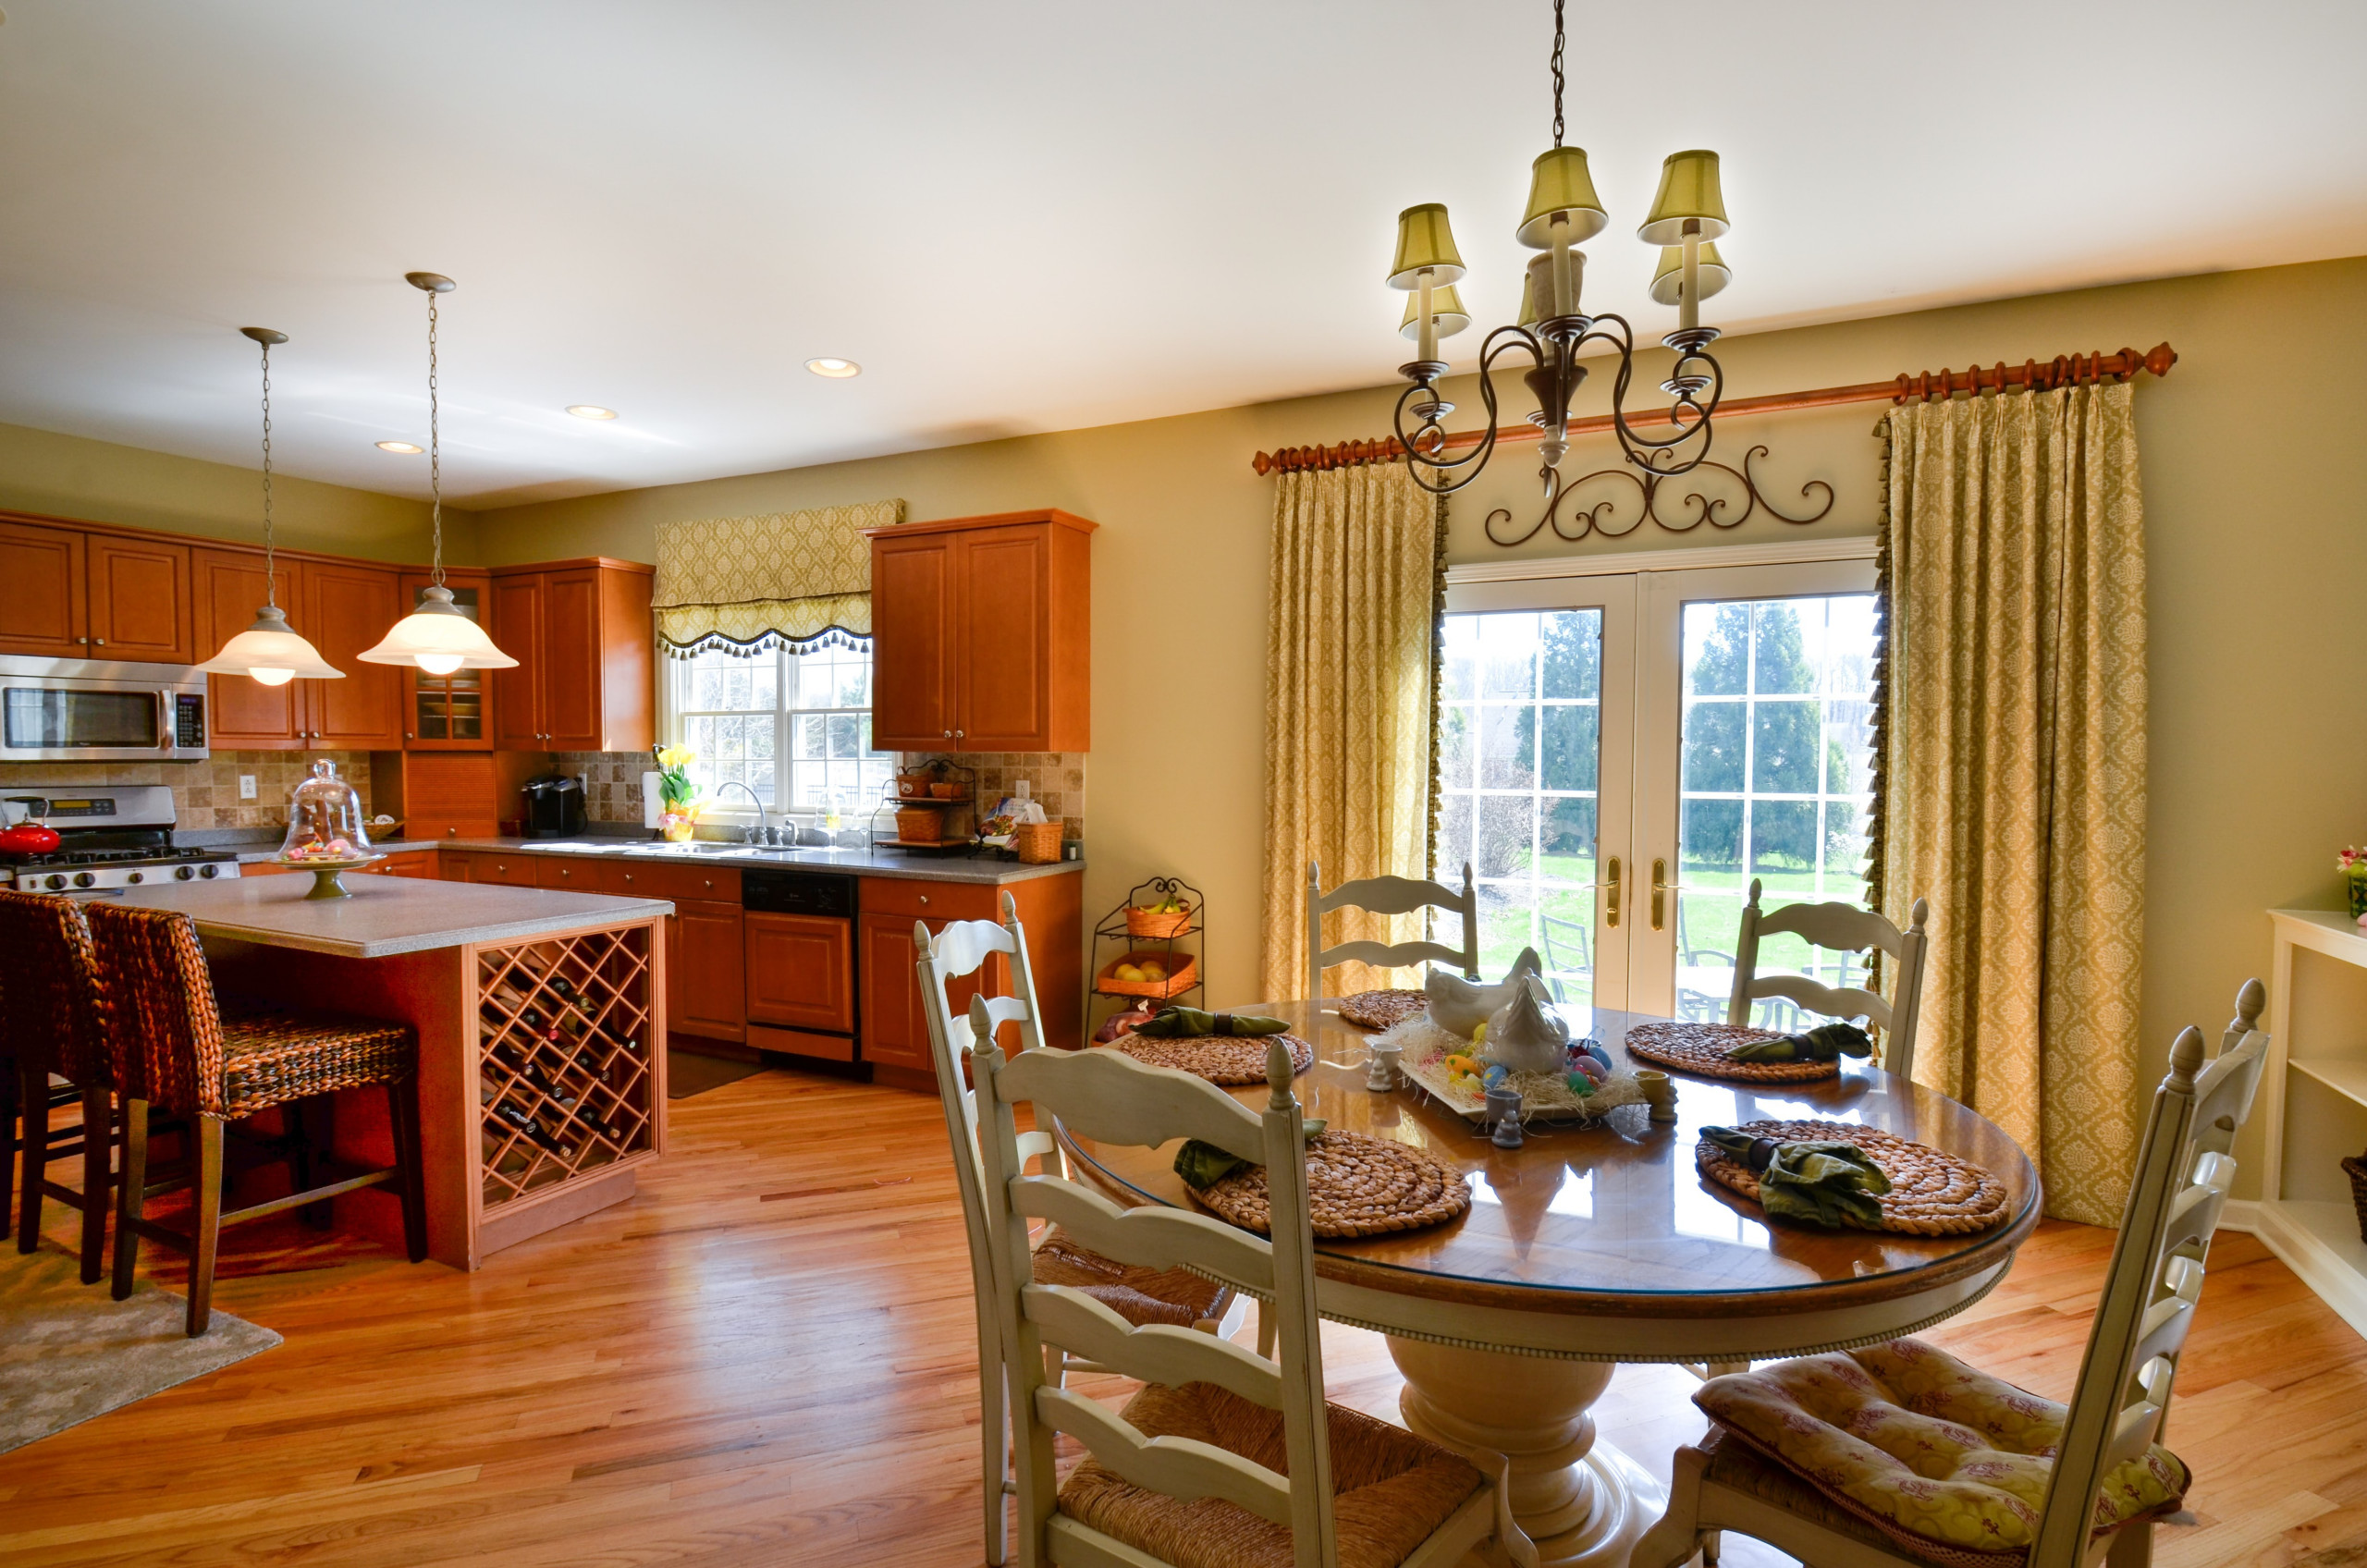 Kitchen with panels and shade with fabric and matching tassel trim.